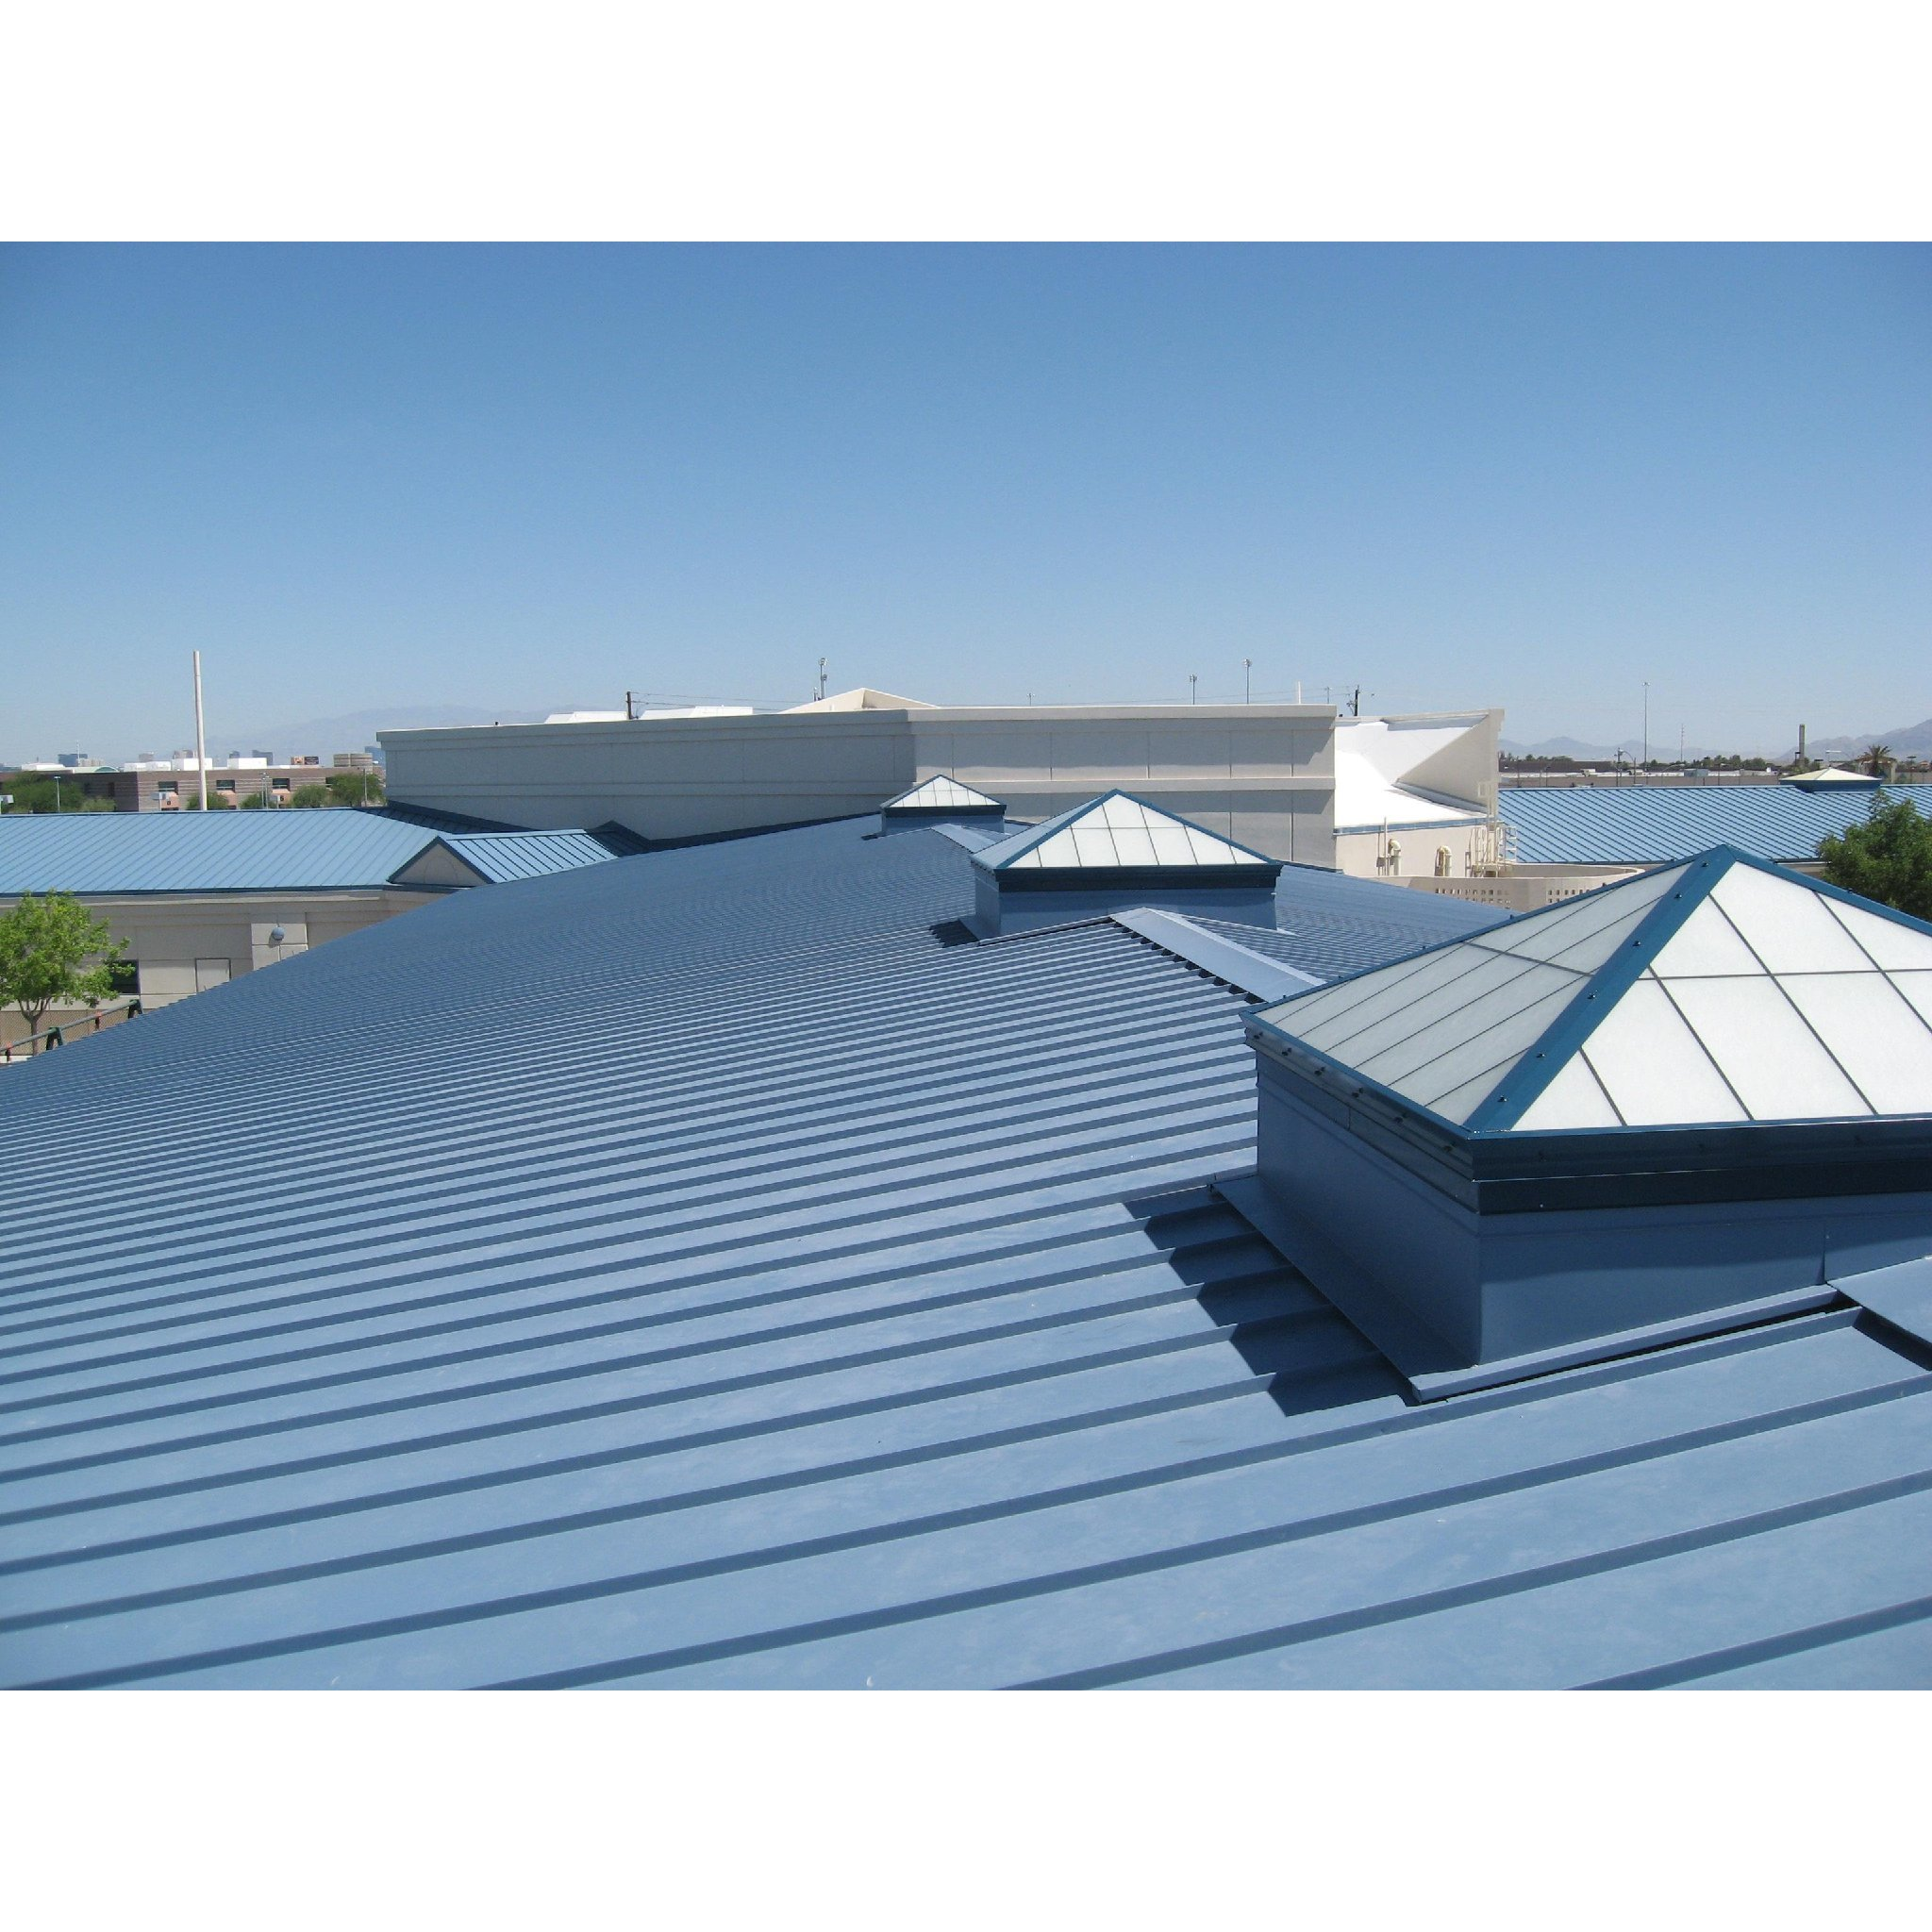 Local Roofing & Cladding